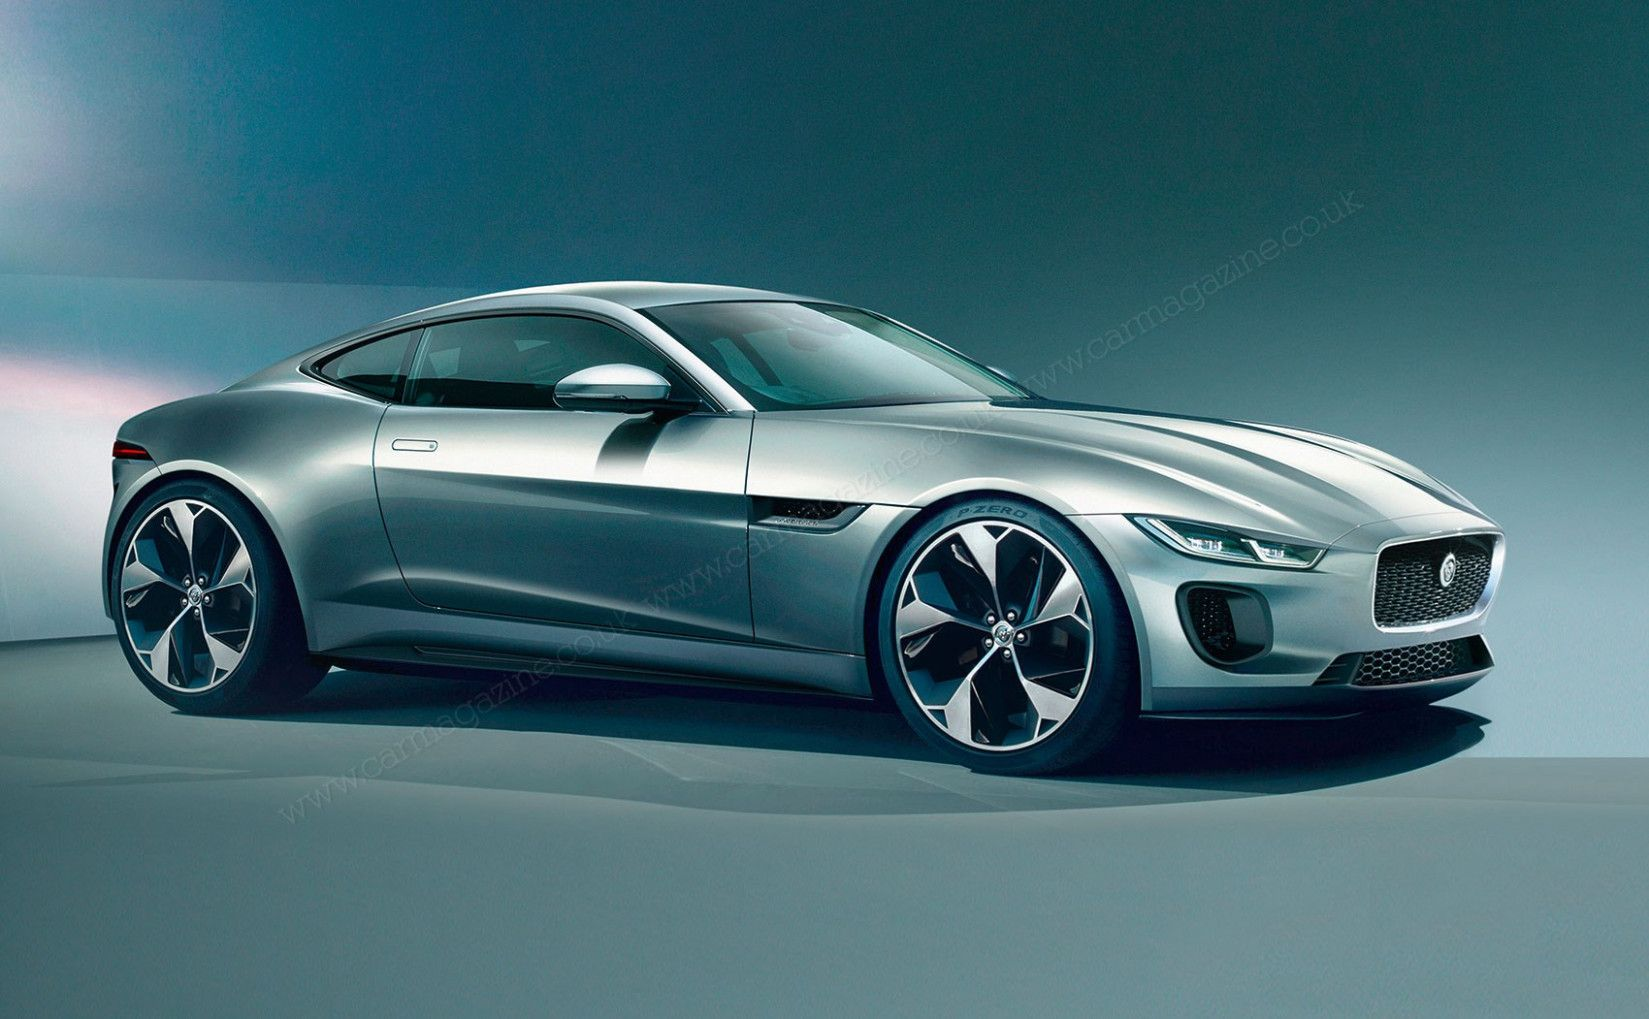 2020 Jaguar F Type Price Redesign Jaguar F Type Jaguar Coupe Jaguar Car